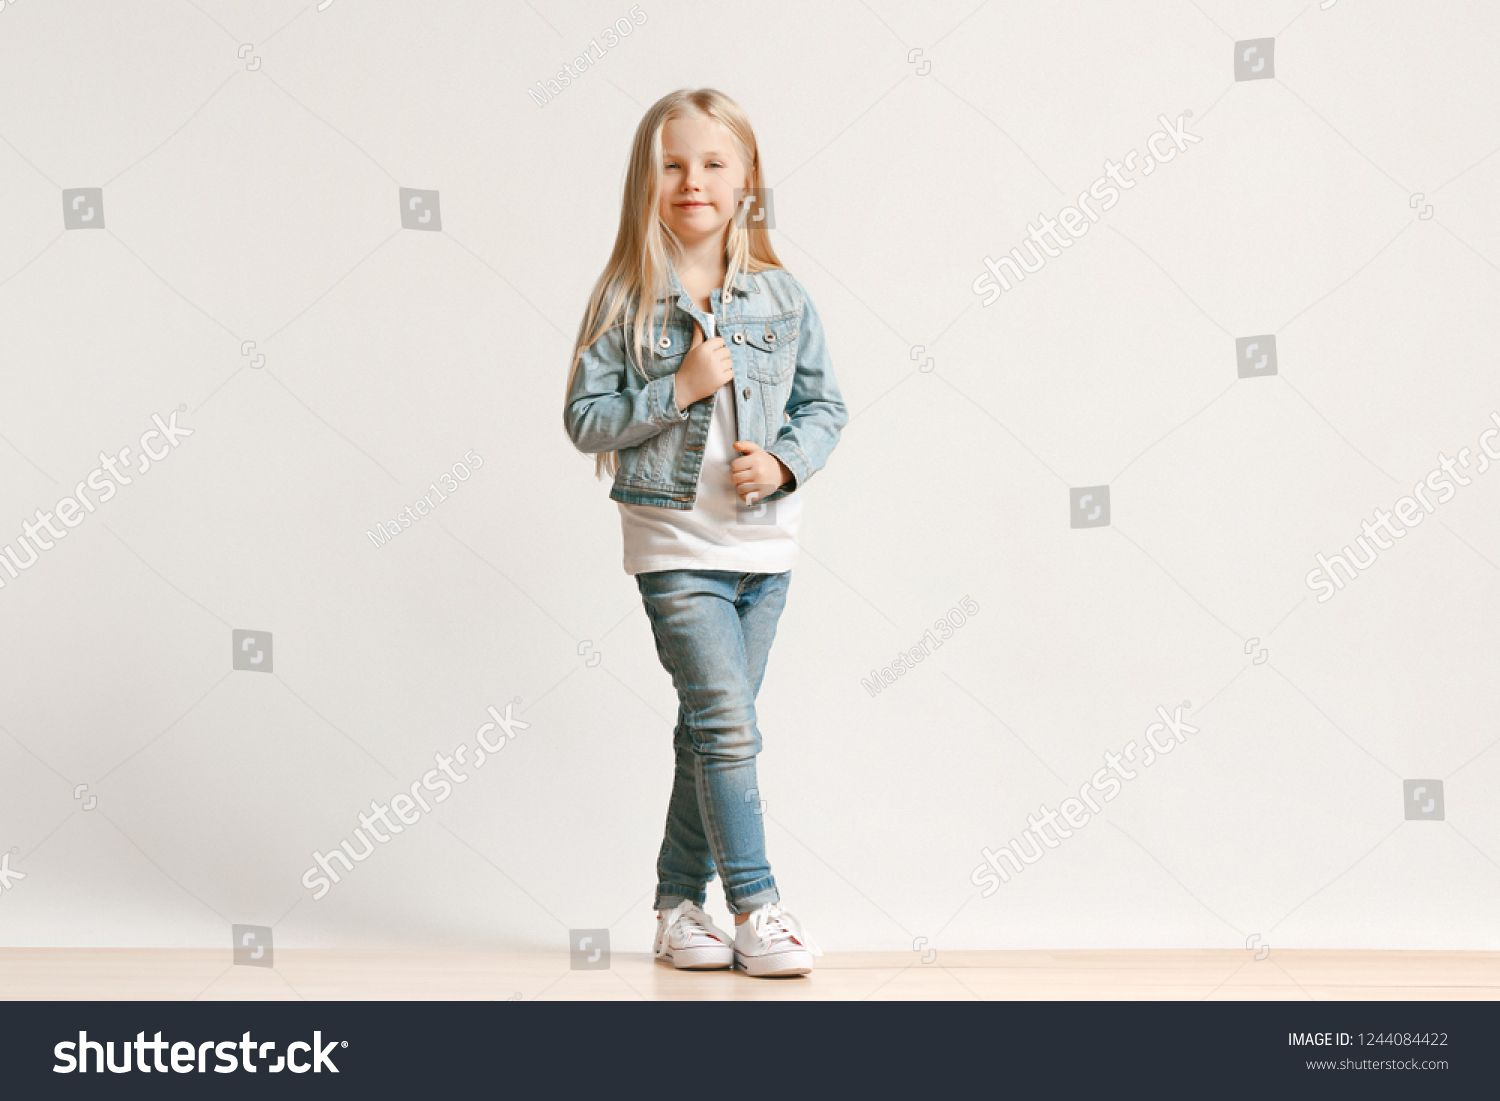 0948a0160 Full length portrait of cute little kid girl in stylish jeans clothes  looking at camera and